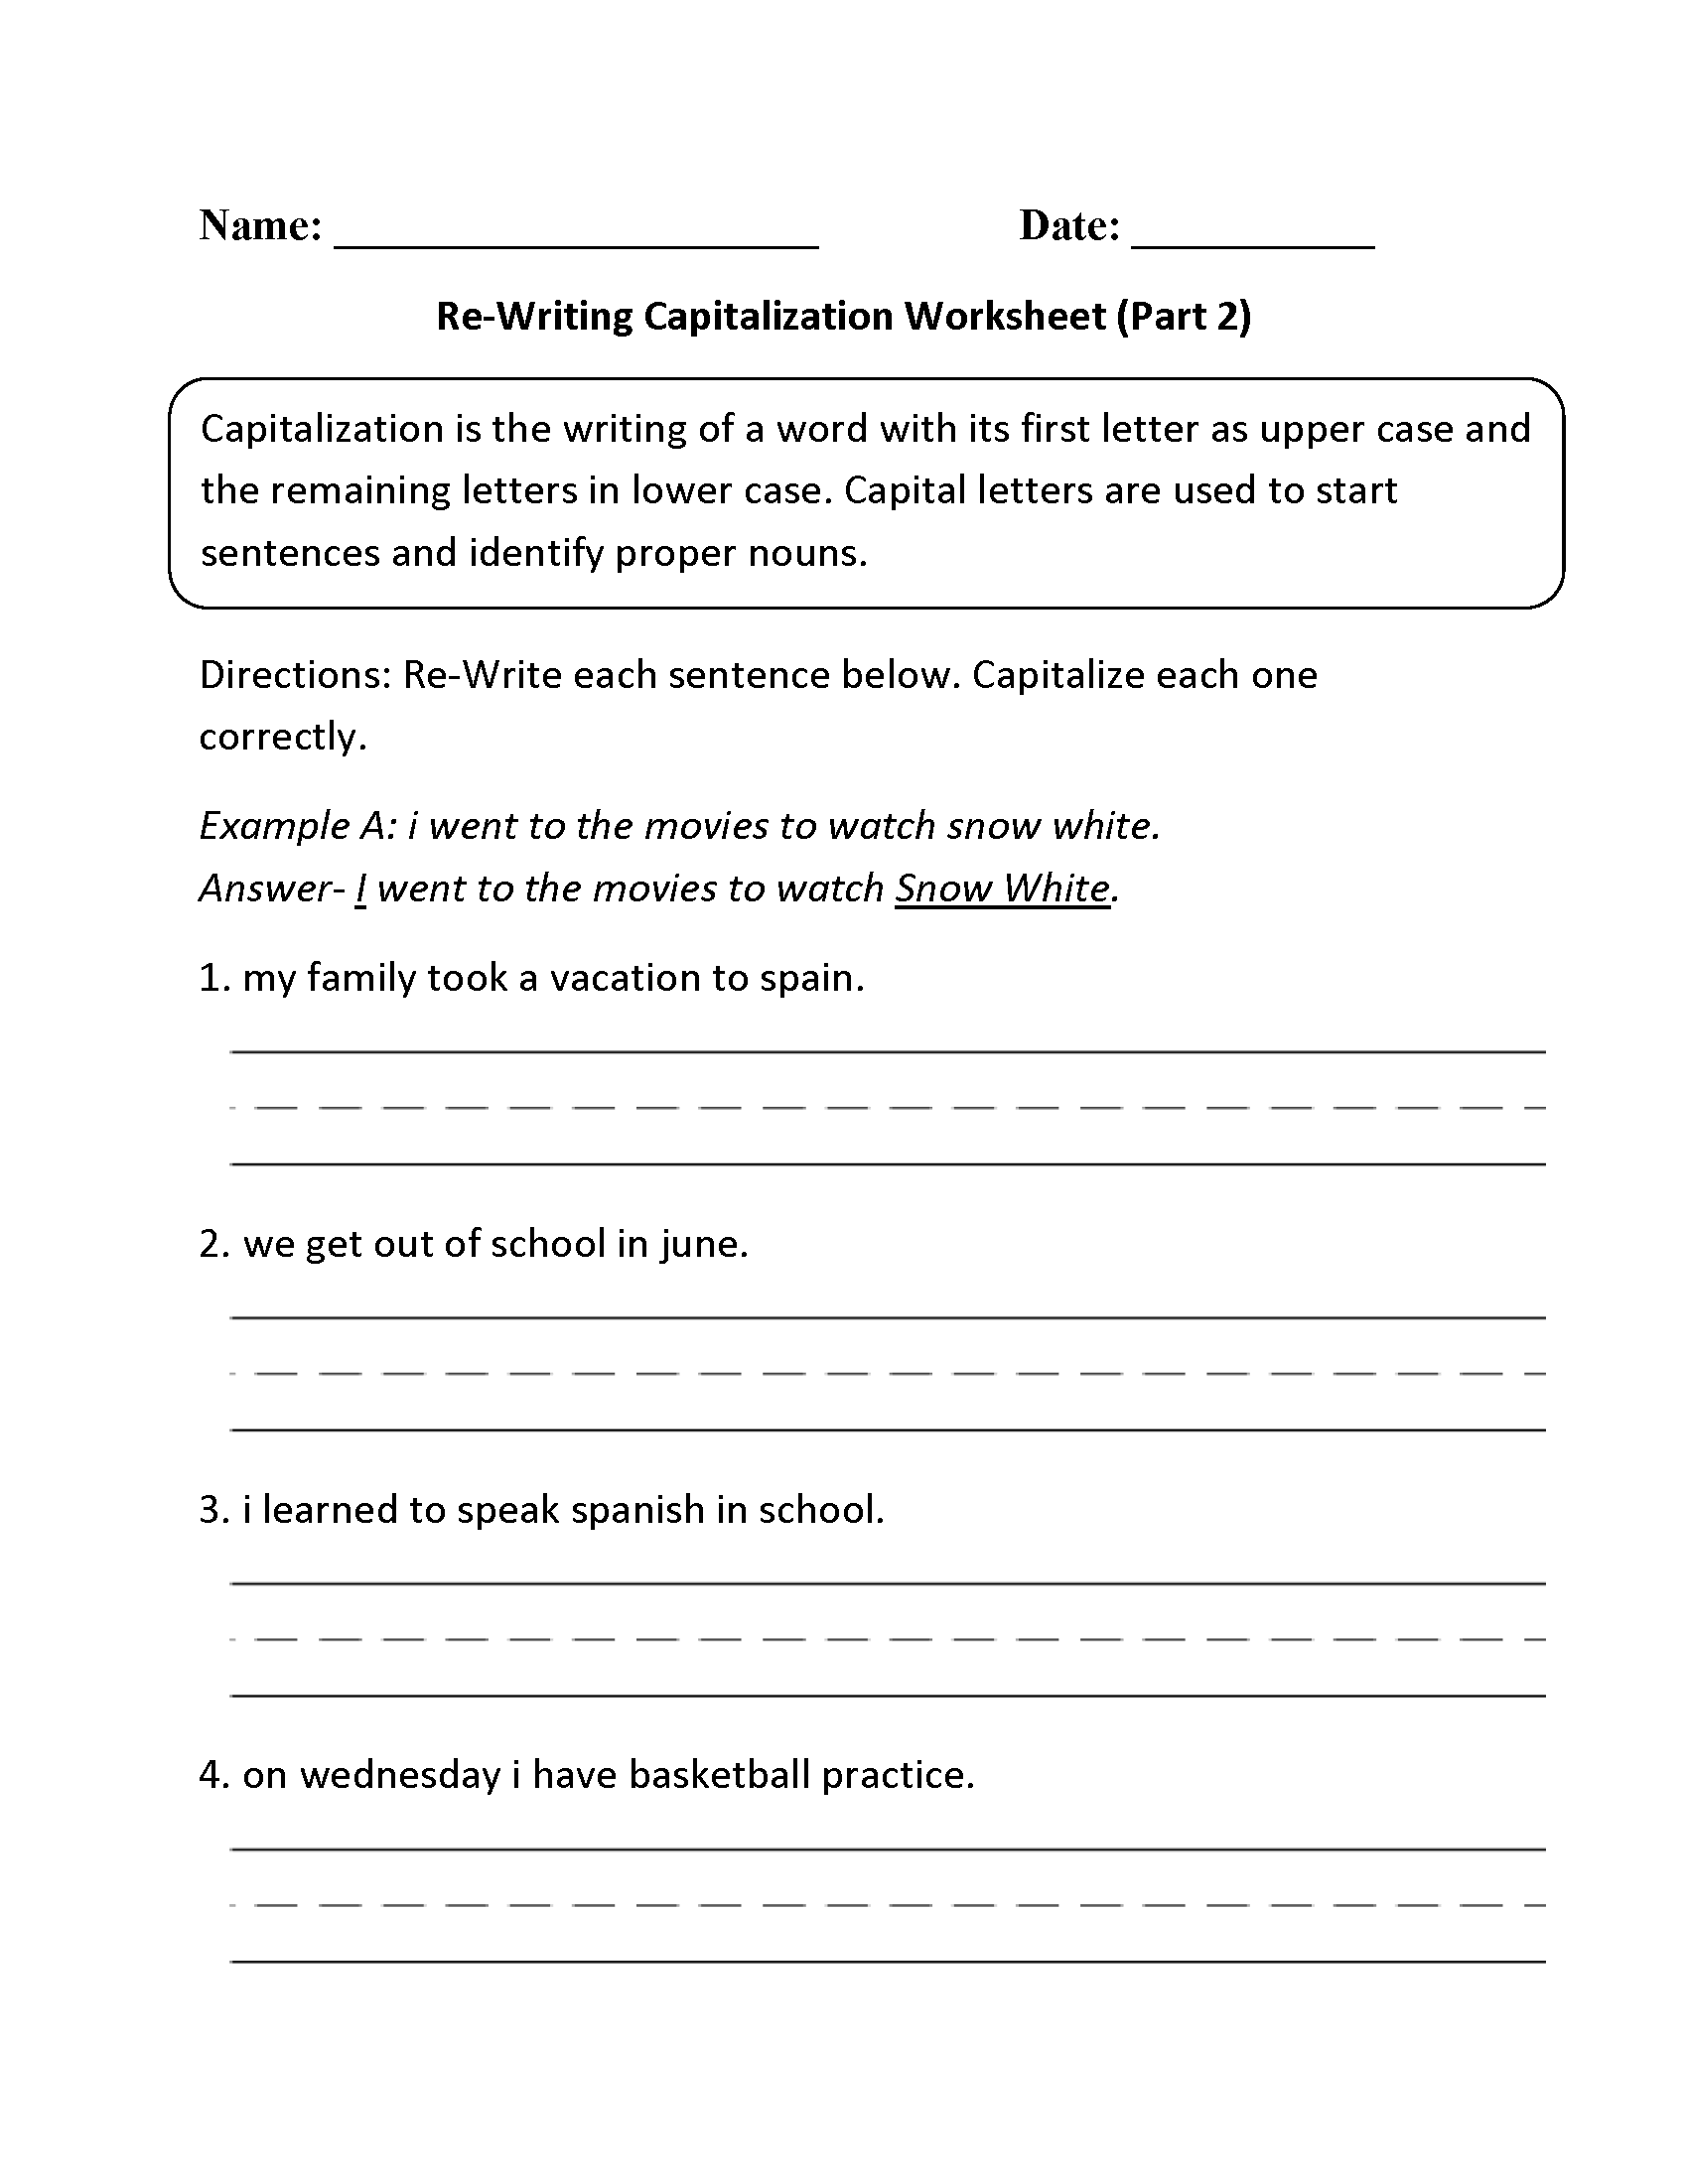 Worksheet Capitalization Worksheets englishlinx com capitalization worksheets re writing worksheet part 2